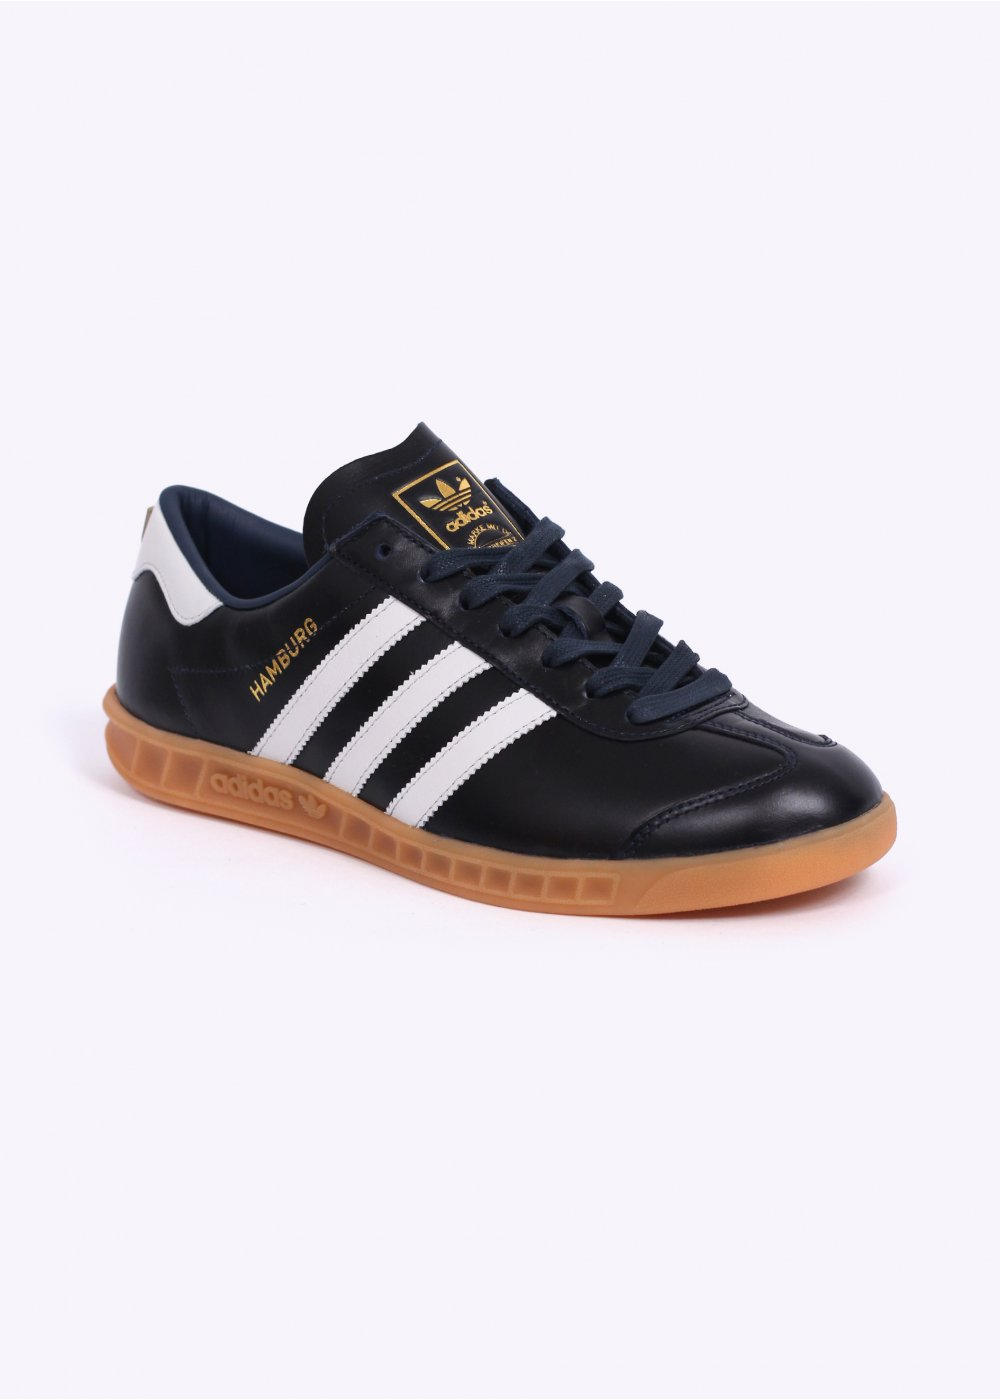 on sale 52baf 6a2d1 Hamburg 039Made in Germany039 Trainers - Collegiate ...